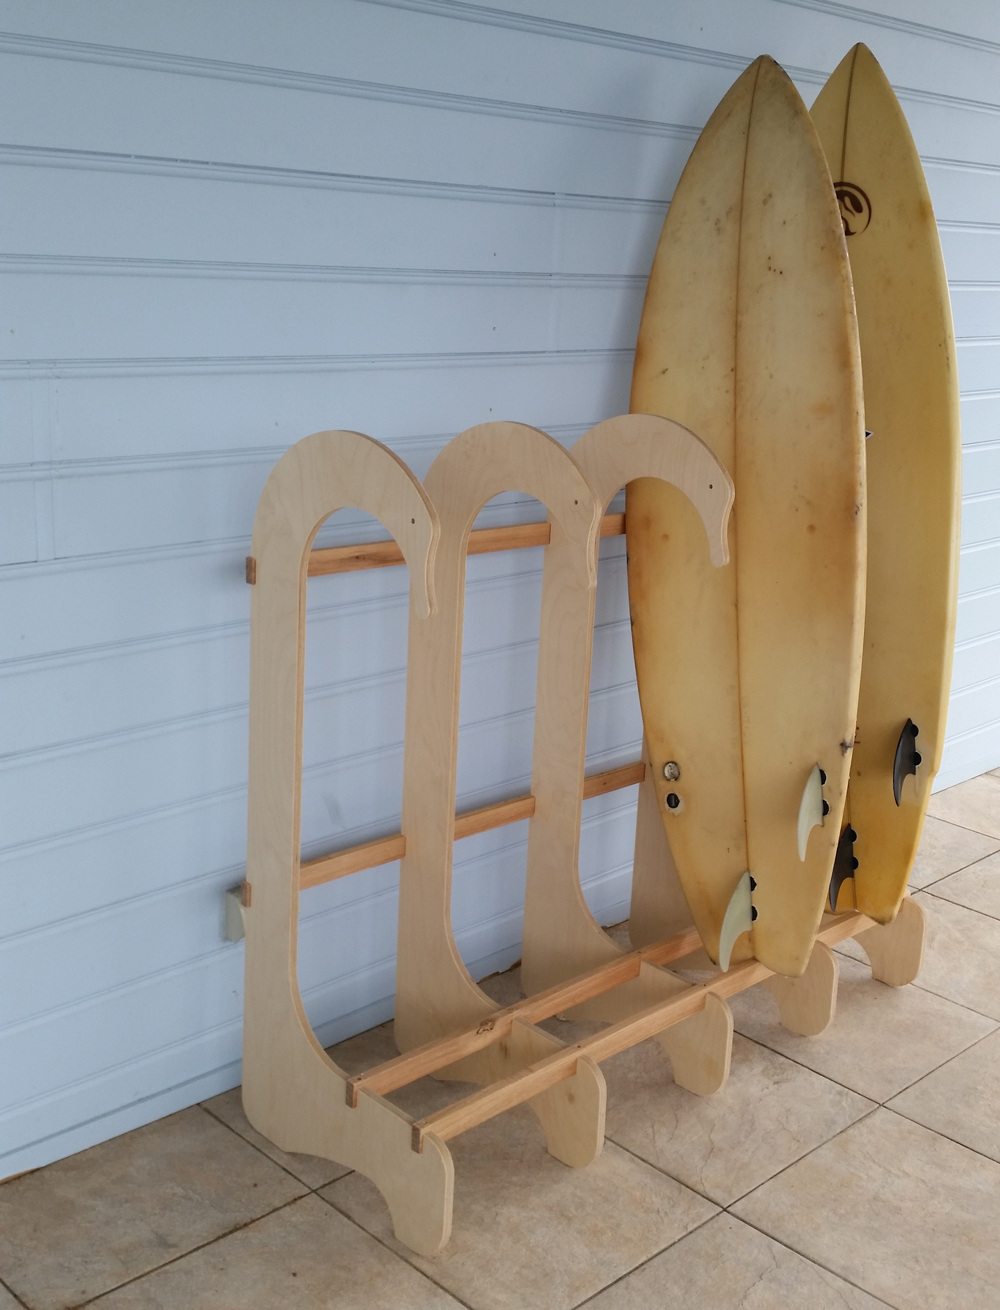 Surfboard Rack For Five Boards With Swan S Head Design